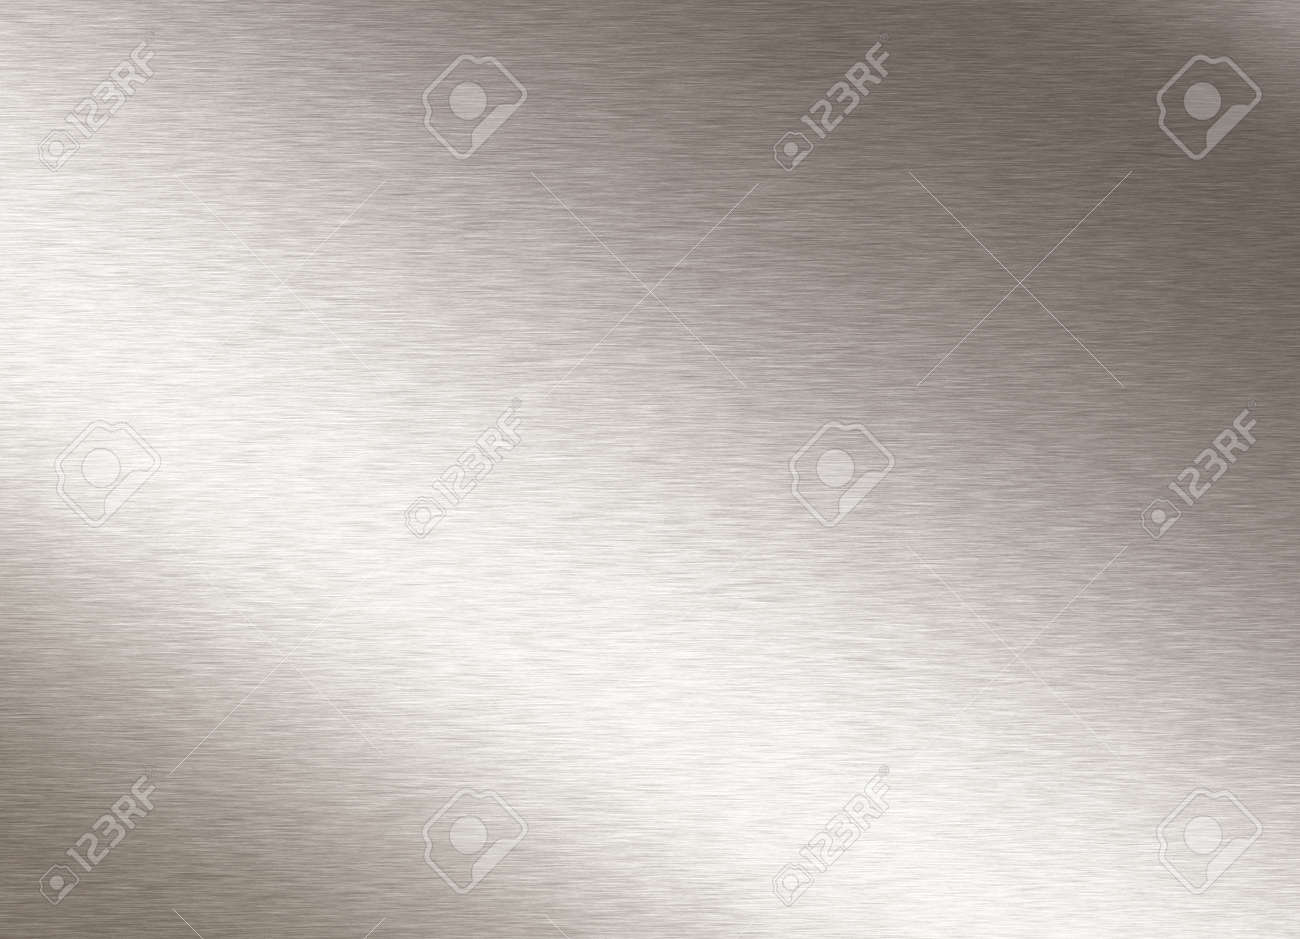 brushed steel plate Stock Photo - 2802666